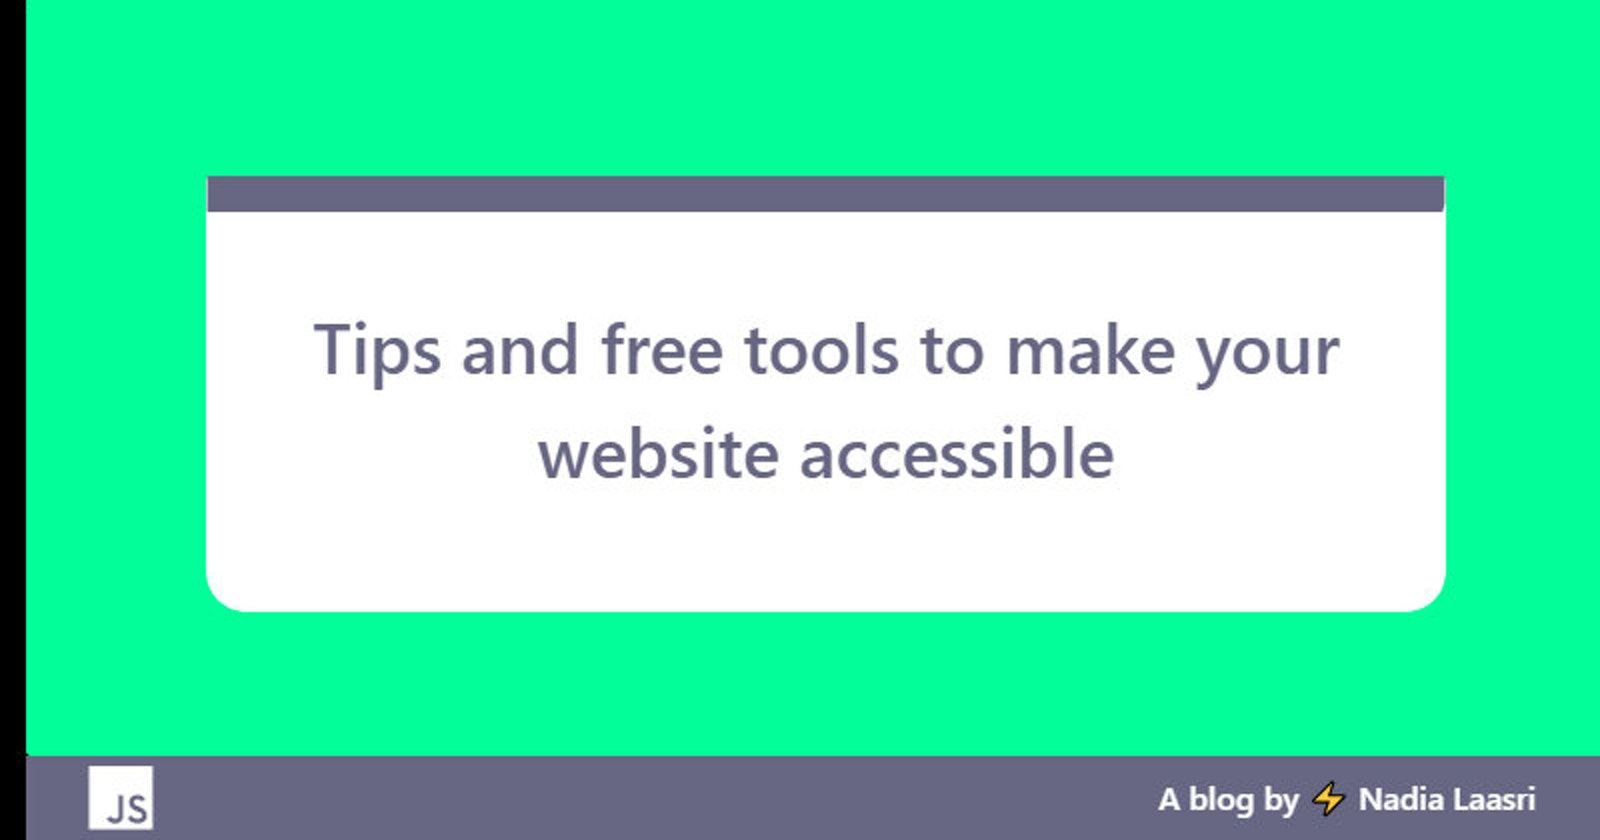 Tips and free tools to make your website accessible